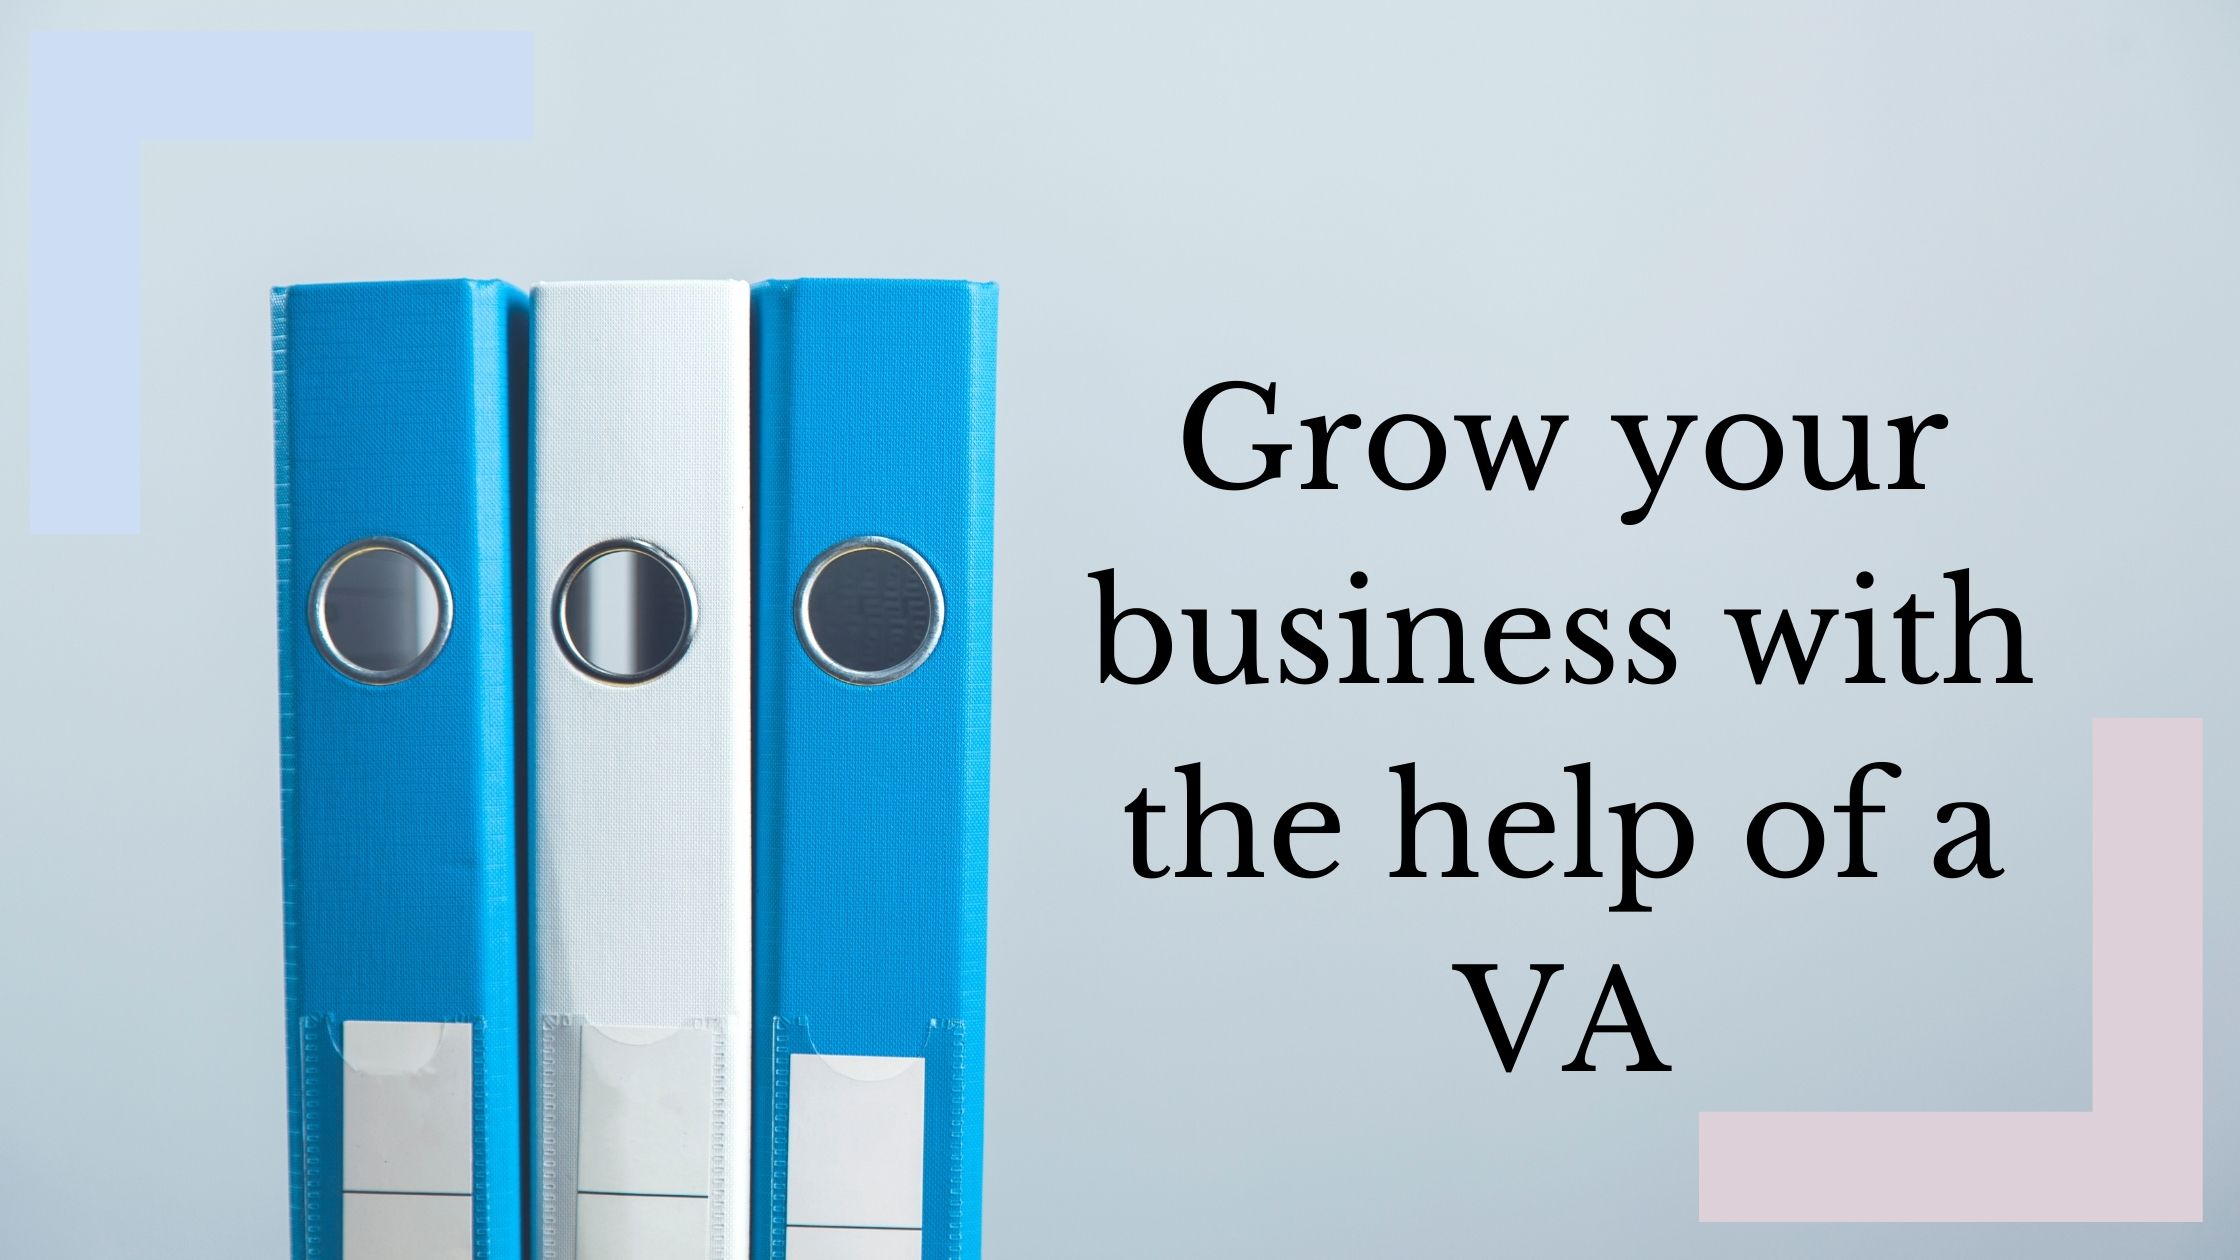 6 Ways a Virtual Assistant can help grow your business